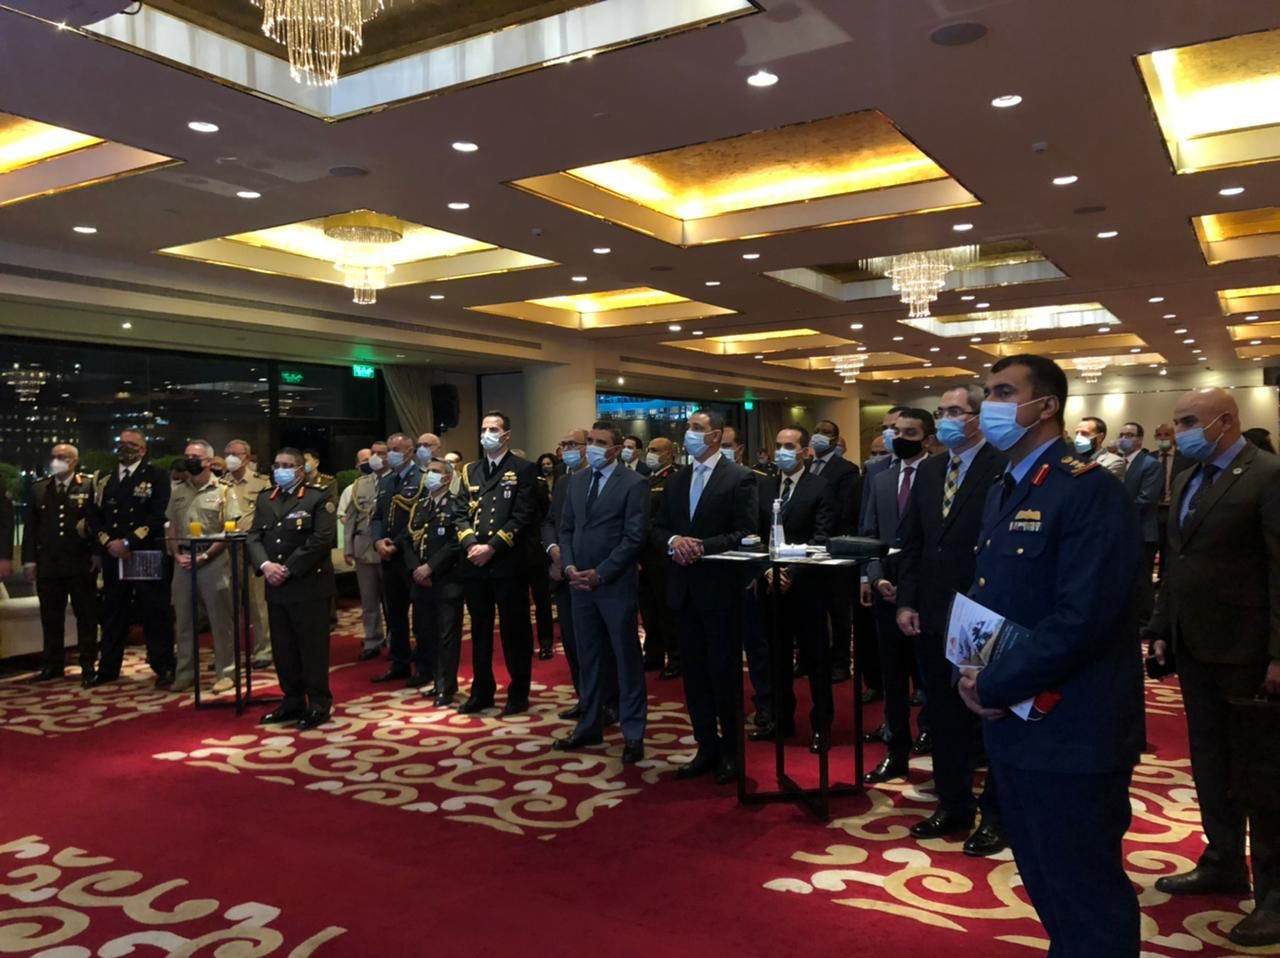 Over 100 military and government attendees join briefing for EDEX 2021 in Cairo